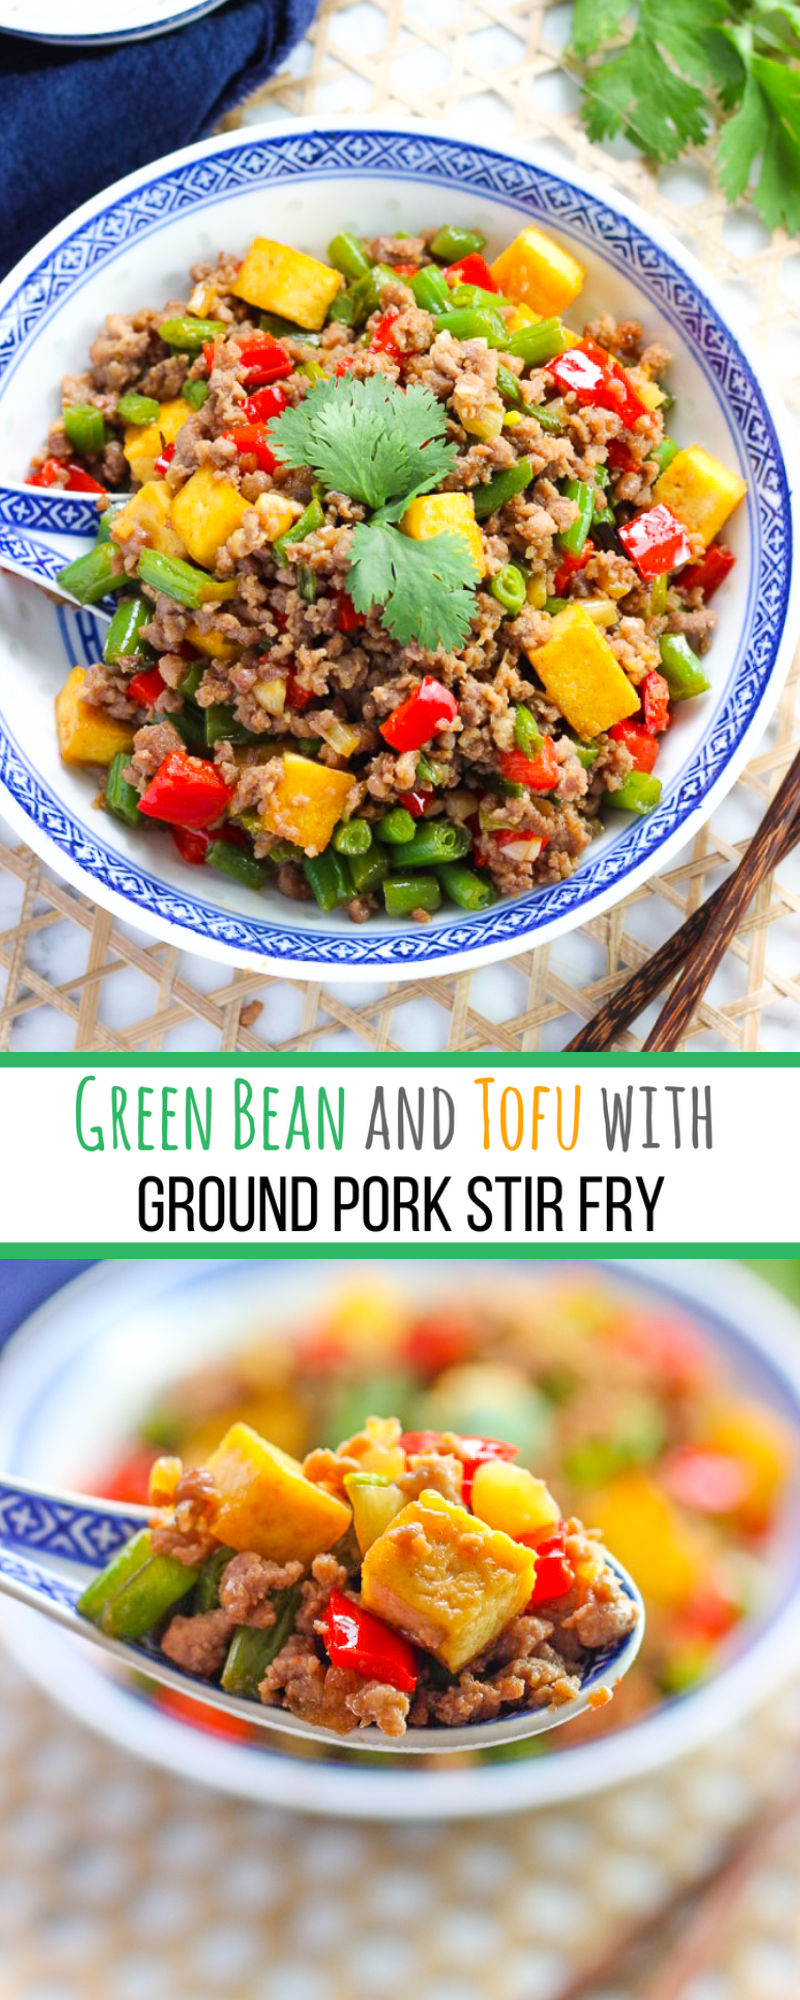 Green Bean and Tofu With Ground Pork Stir Fry for Pinterest